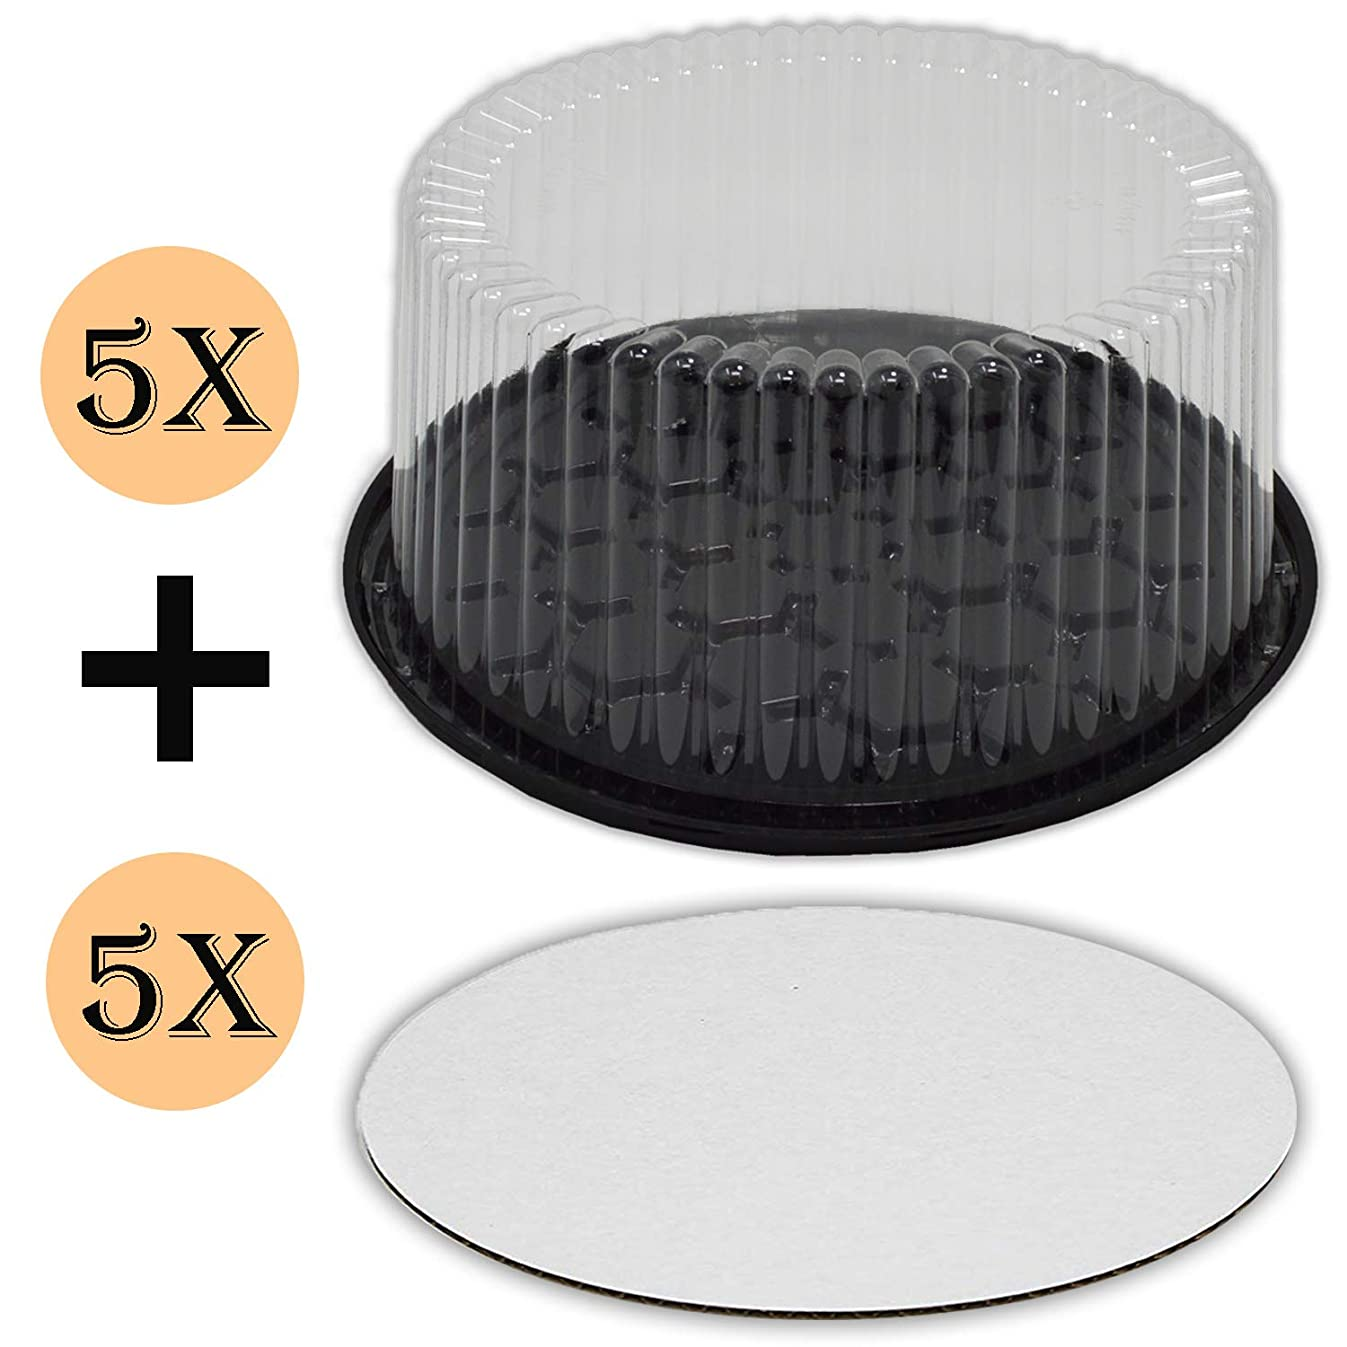 Plastic Cake Container with Clear Dome Lid 9 Inch and Cake Boards 10 inch, Cake Holder with Lid is for 2-3 layer cakes, Cake Board is Round, Cake Supplies, 5 Pack of each.